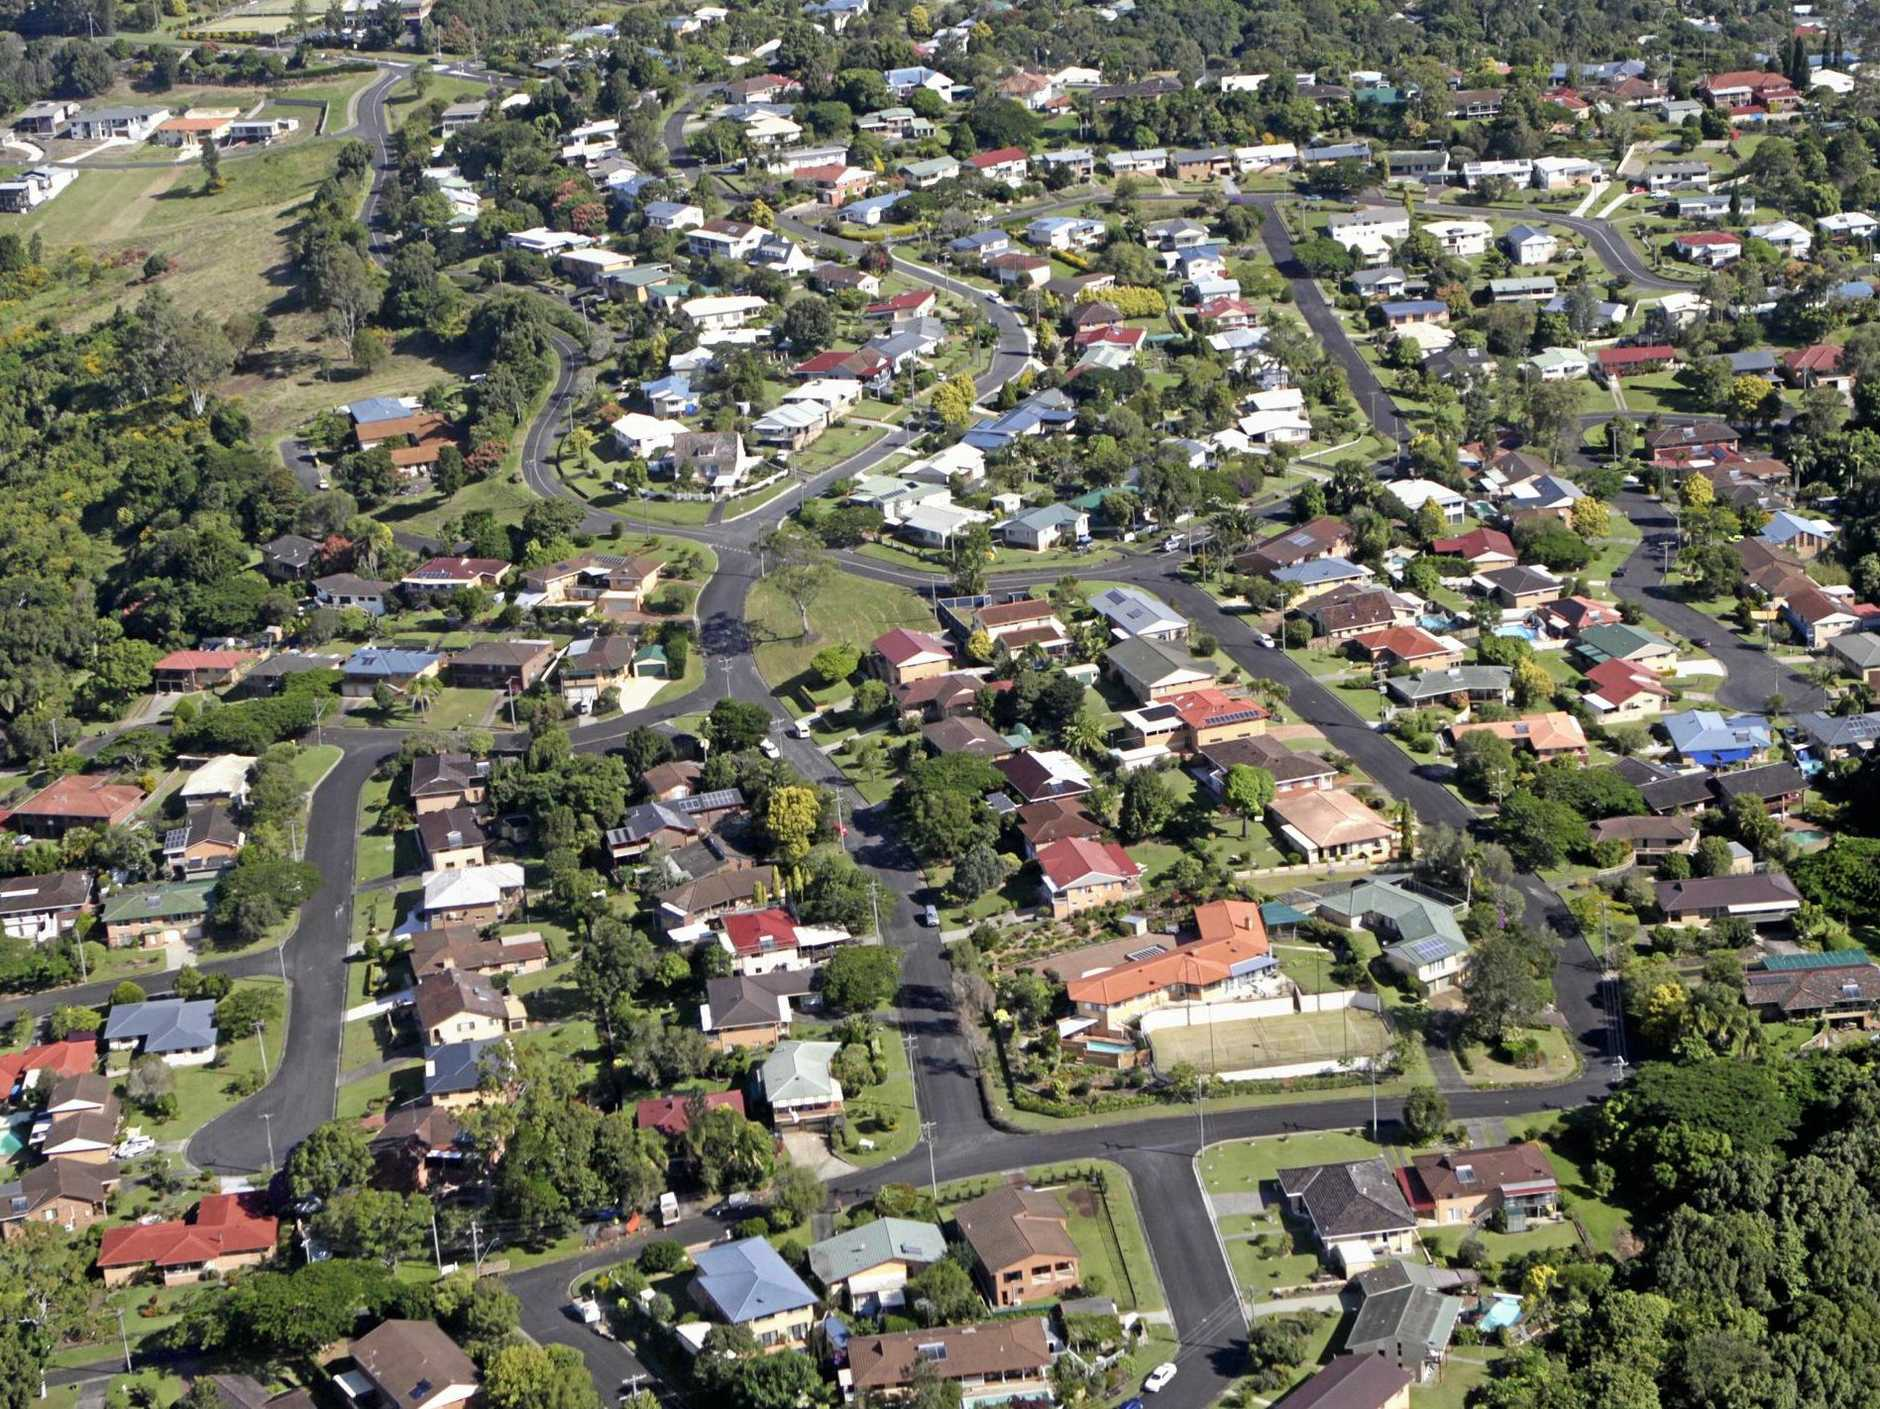 By 2030, there will be more than a quarter of a million people calling the Northern Rivers home.